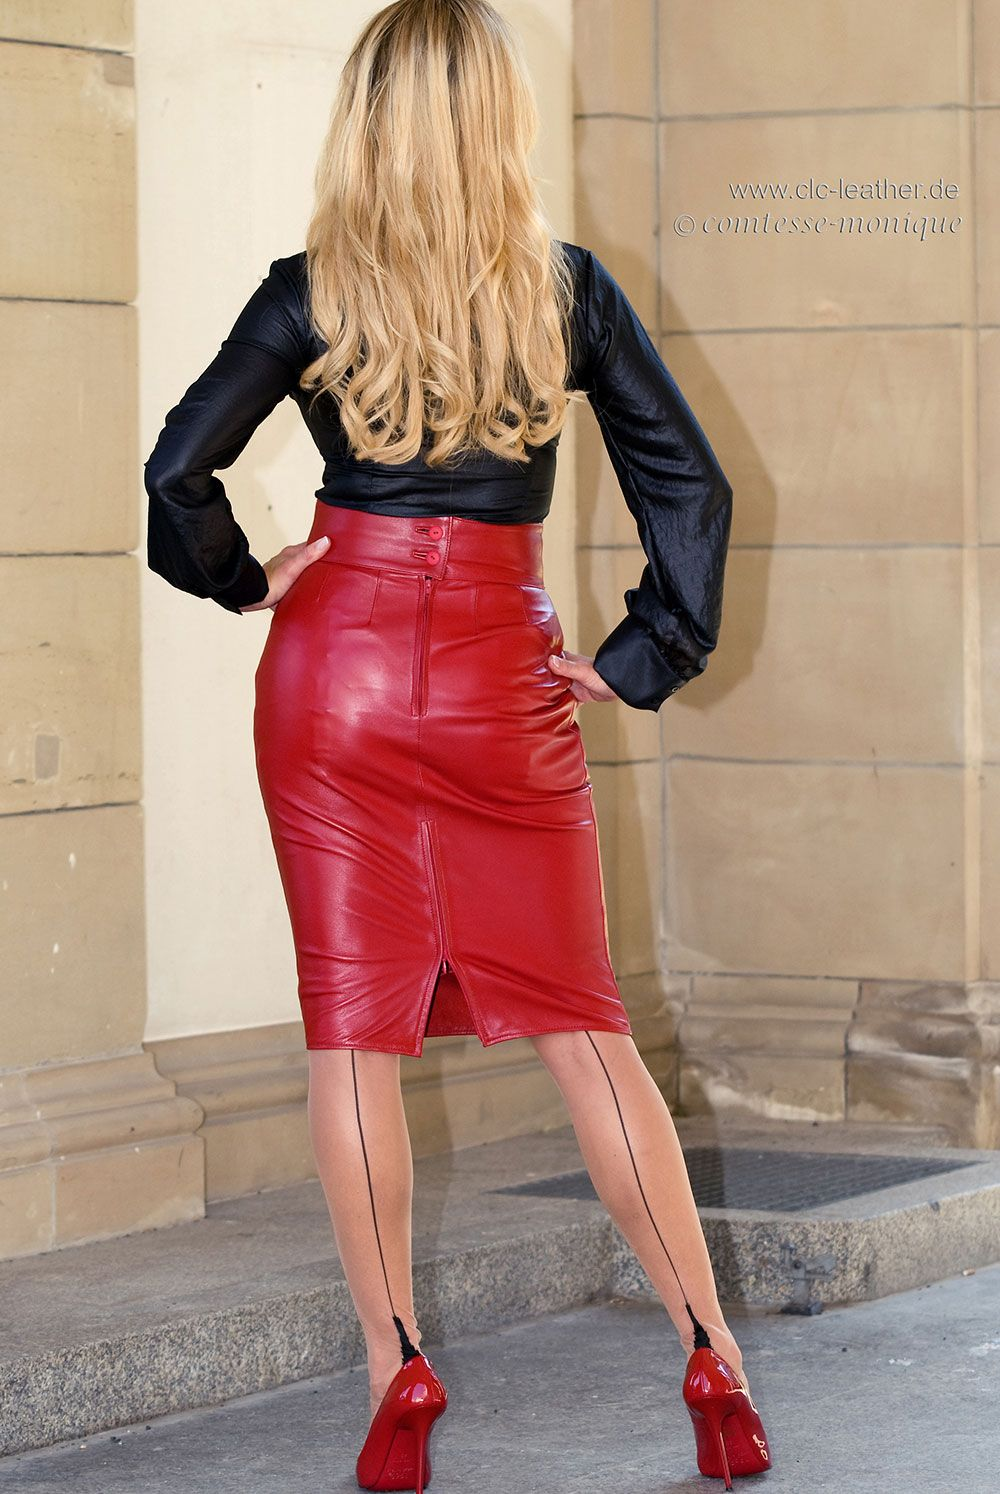 b3ba2d74f Garter Bumps Under Tight Red Laether Pencil Skirt Black Blouse Sheer Back  Seam Stockings and Red Stiletto High Heels